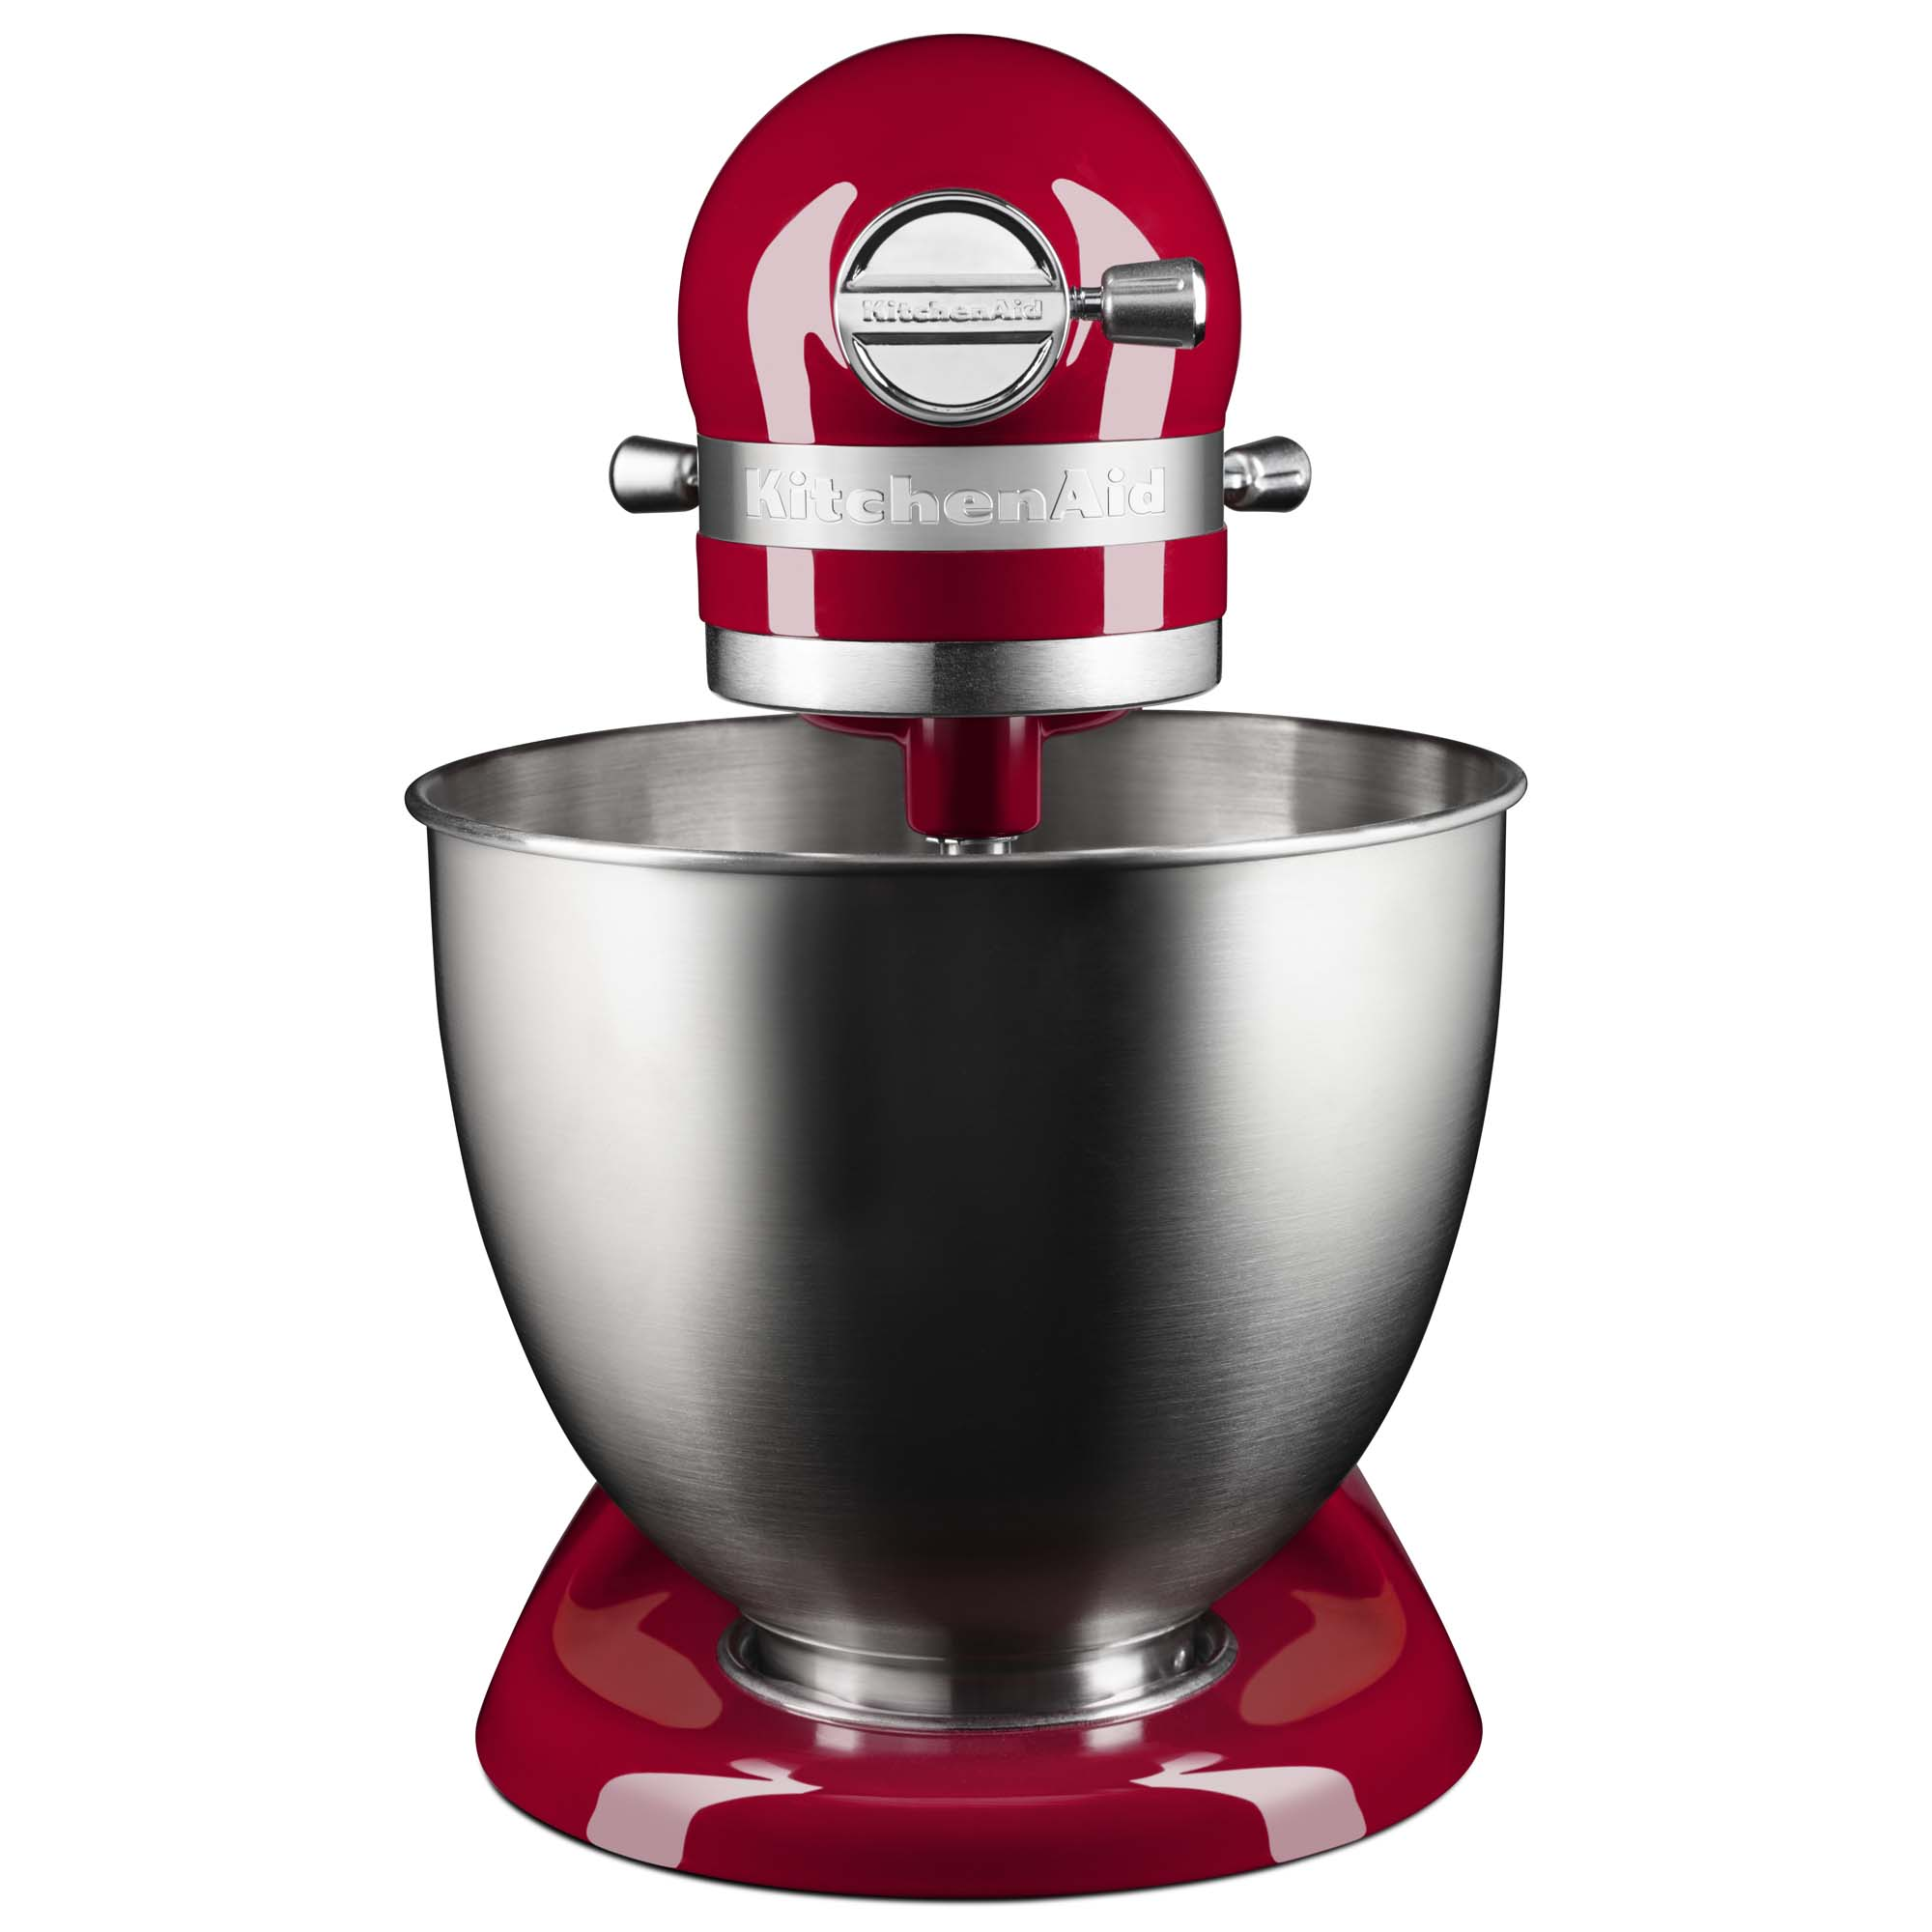 KitchenAid-Refurbished-Artisan-Mini-3-5-Quart-Tilt-Head-Stand-Mixer-RKSM33XX thumbnail 14